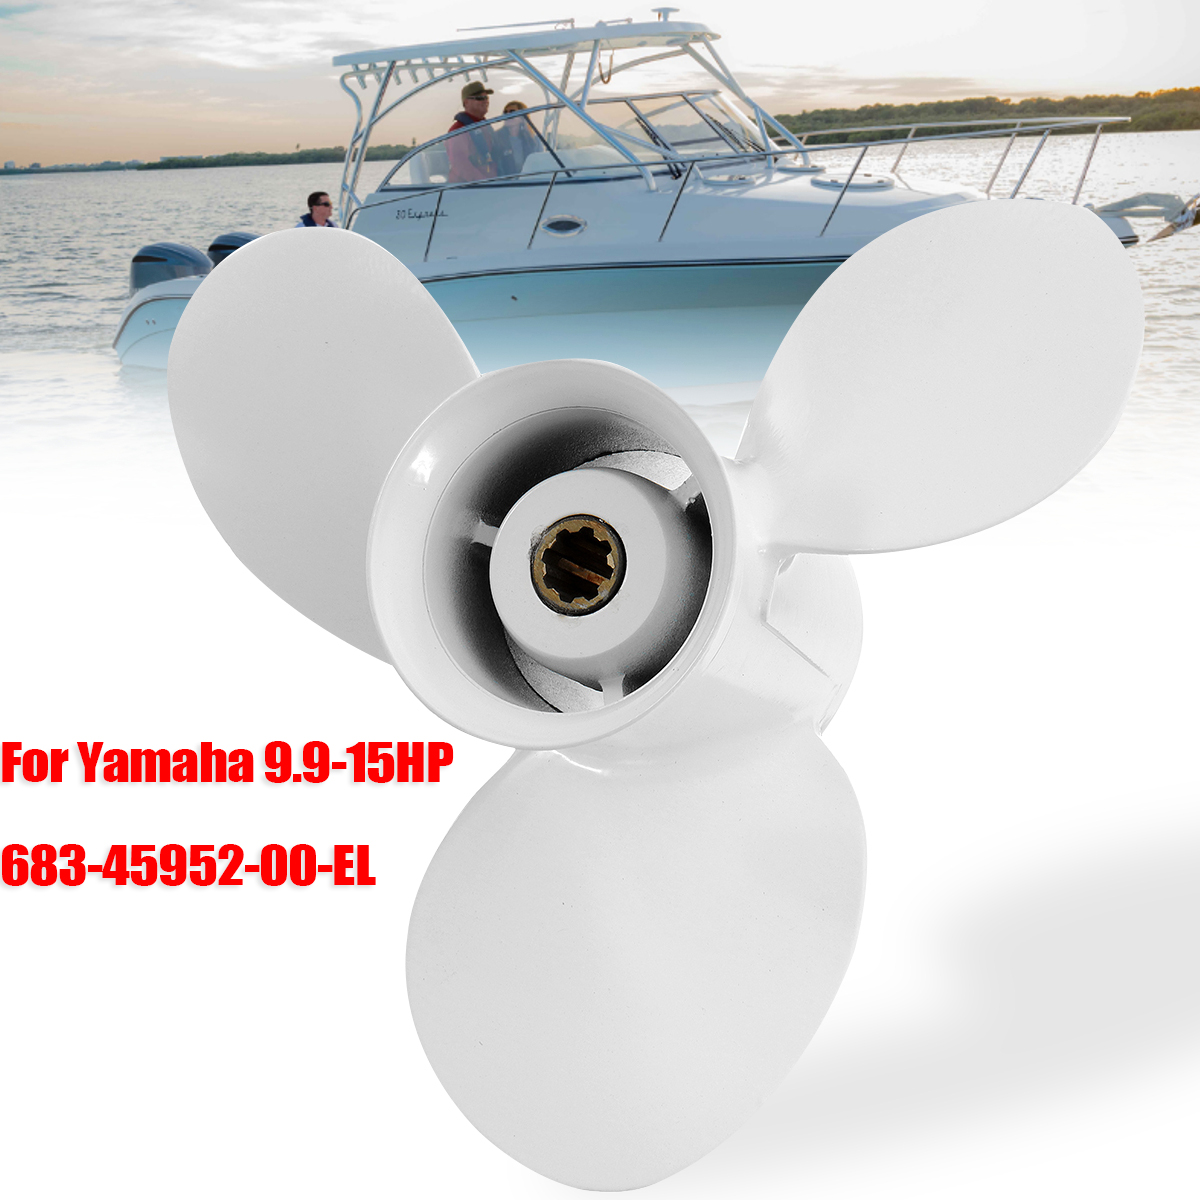 Back To Search Resultsautomobiles & Motorcycles Boat Parts & Accessories United 683-45952-00-el 9 1/4 X 9 3/4 Aluminum Alloy Boat Outboard Propeller For Yamaha 9.9-15hp R Rotation 3 Blades 8 Spline Tooths